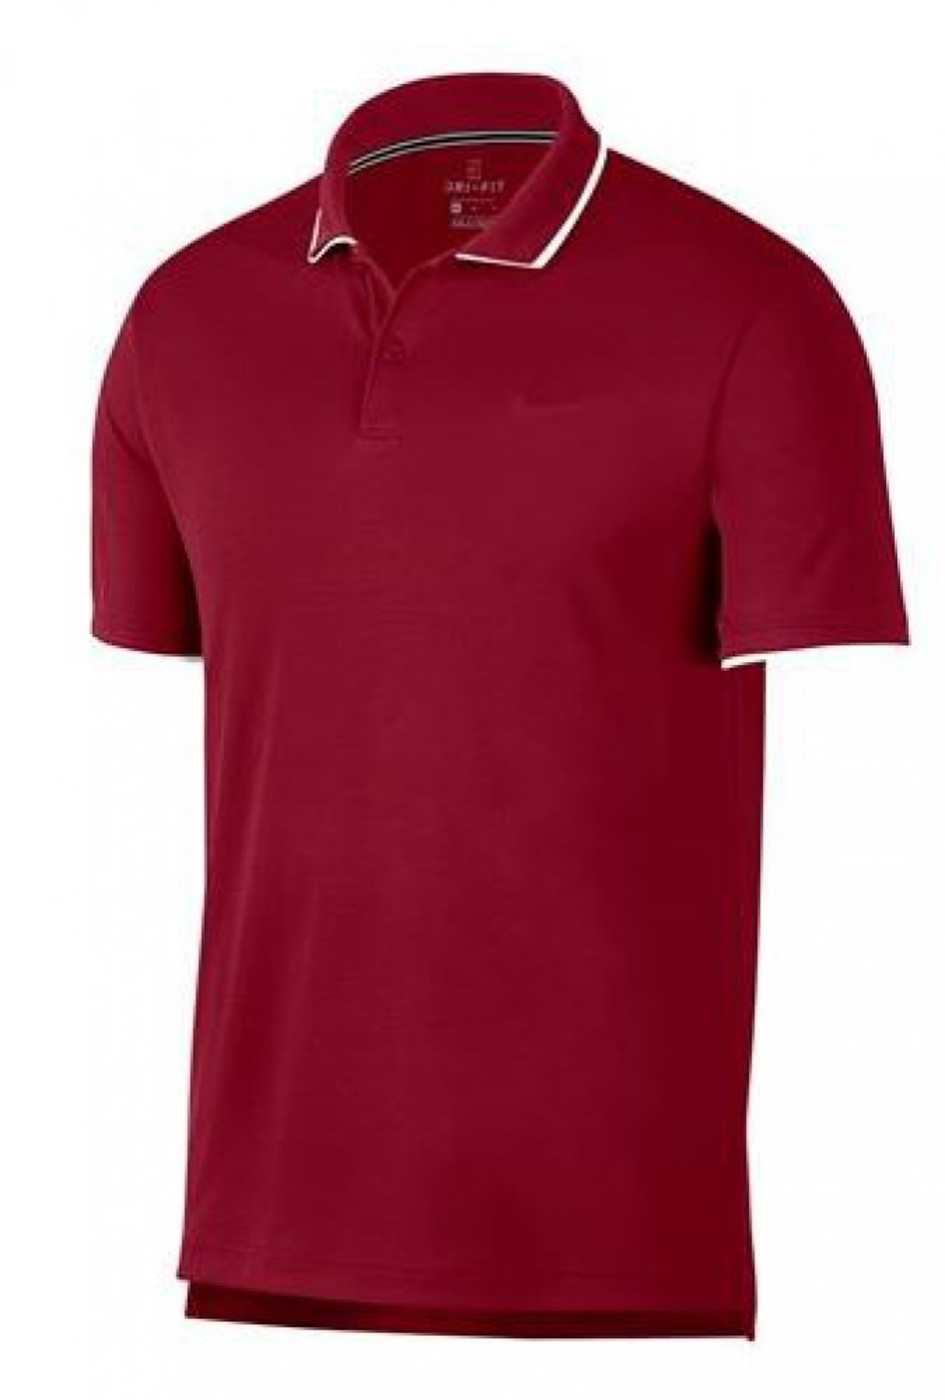 NikeCourt Dri-FIT Tennis - Herren